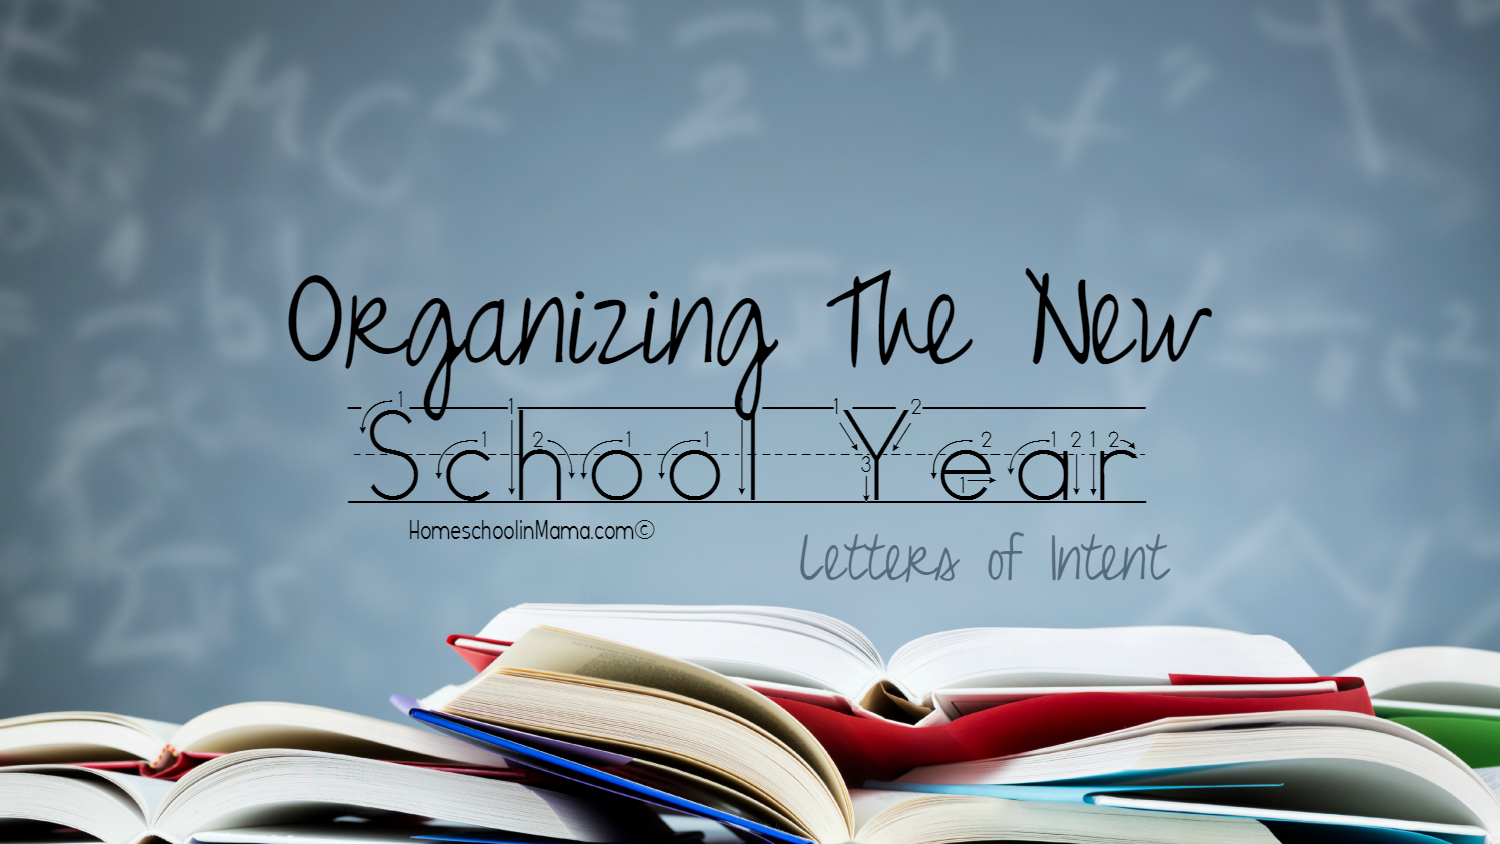 Organization of the new school year - declarations of intent with free expression.